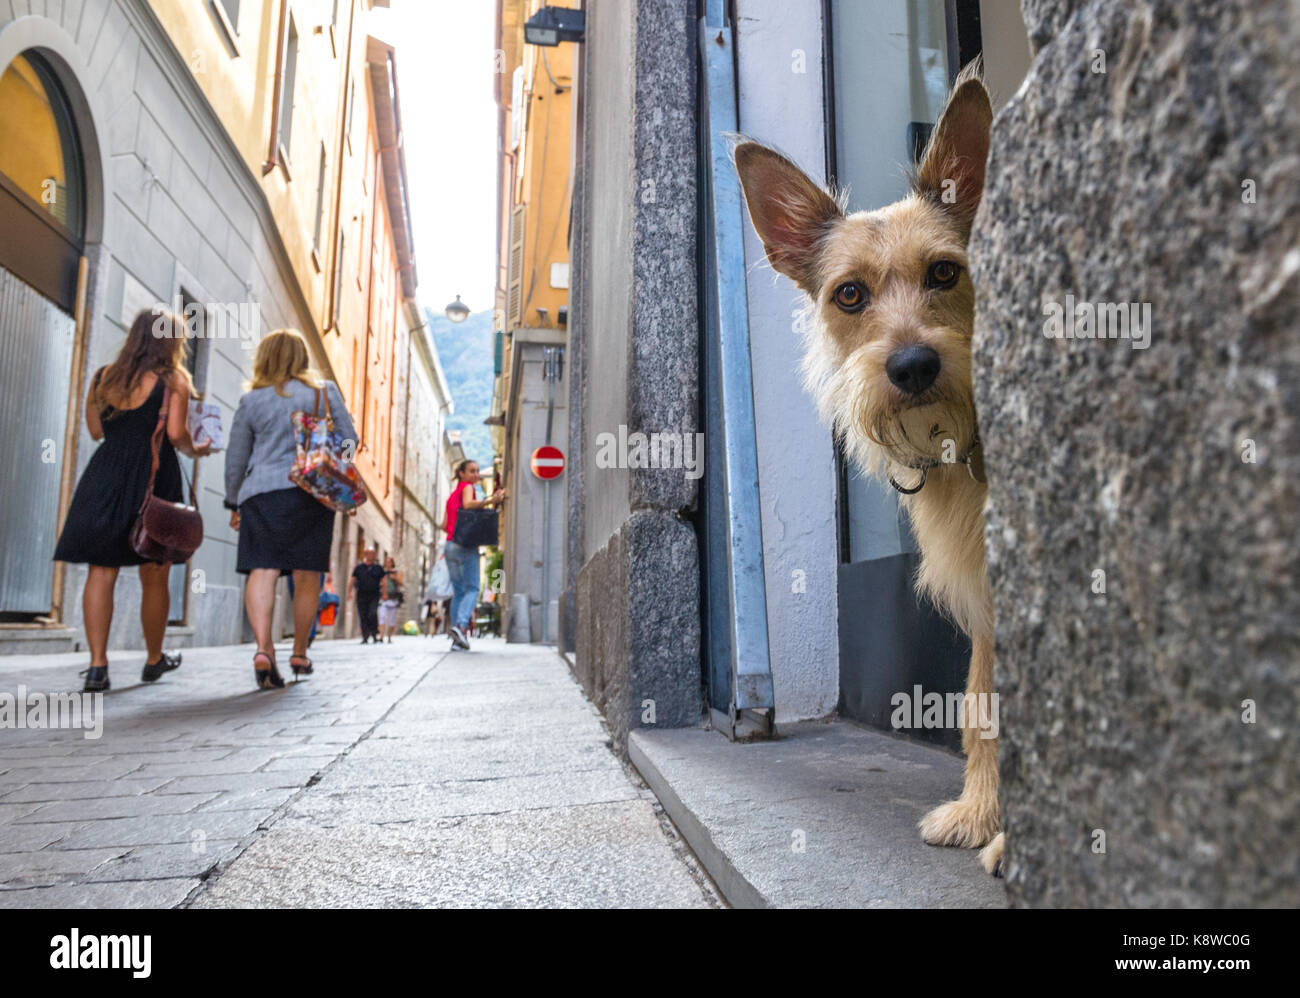 small-dog-in-a-shop-doorway-looking-out-